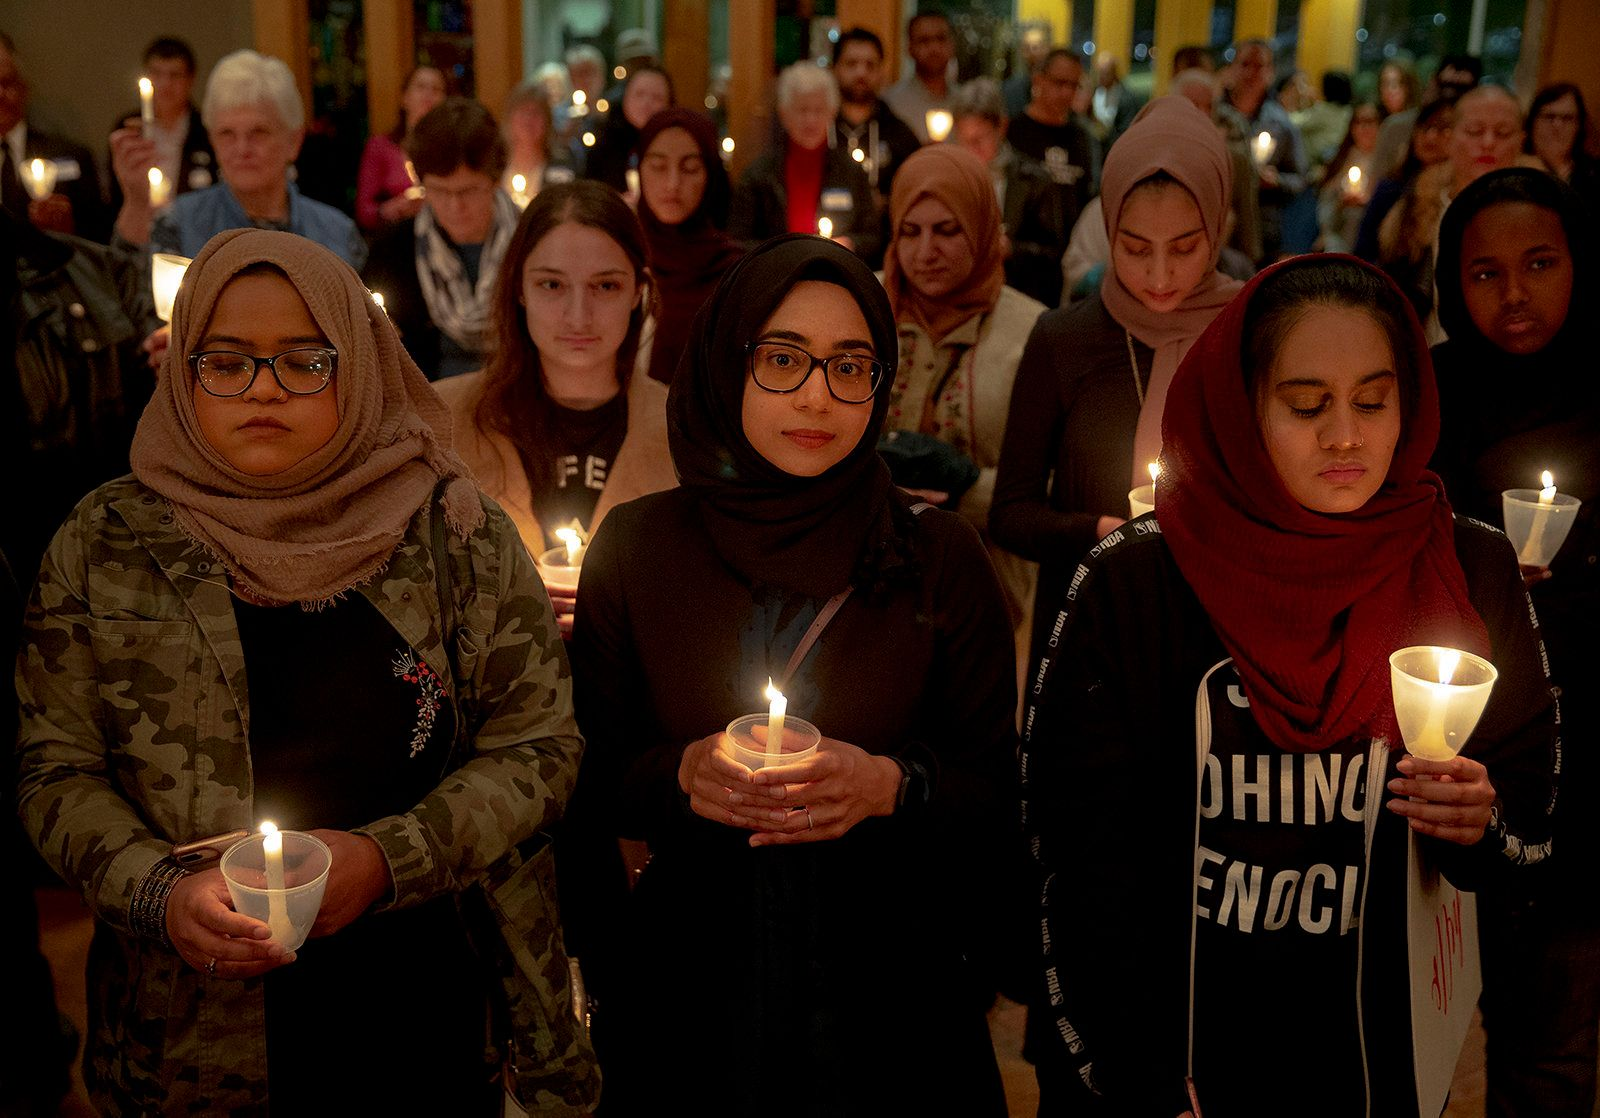 Syeda Sabeera, from left, Sumaiya Syed and Amina Choudhury stand with candles during a prayer service at St. James Episcopal Church on Saturday, March 16, 2019, in Austin, Texas. The service was held in honor of those killed and injured in Friday's mass shooting at two mosques in Christchurch, New Zealand. (Nick Wagner/Austin American-Statesman via AP)